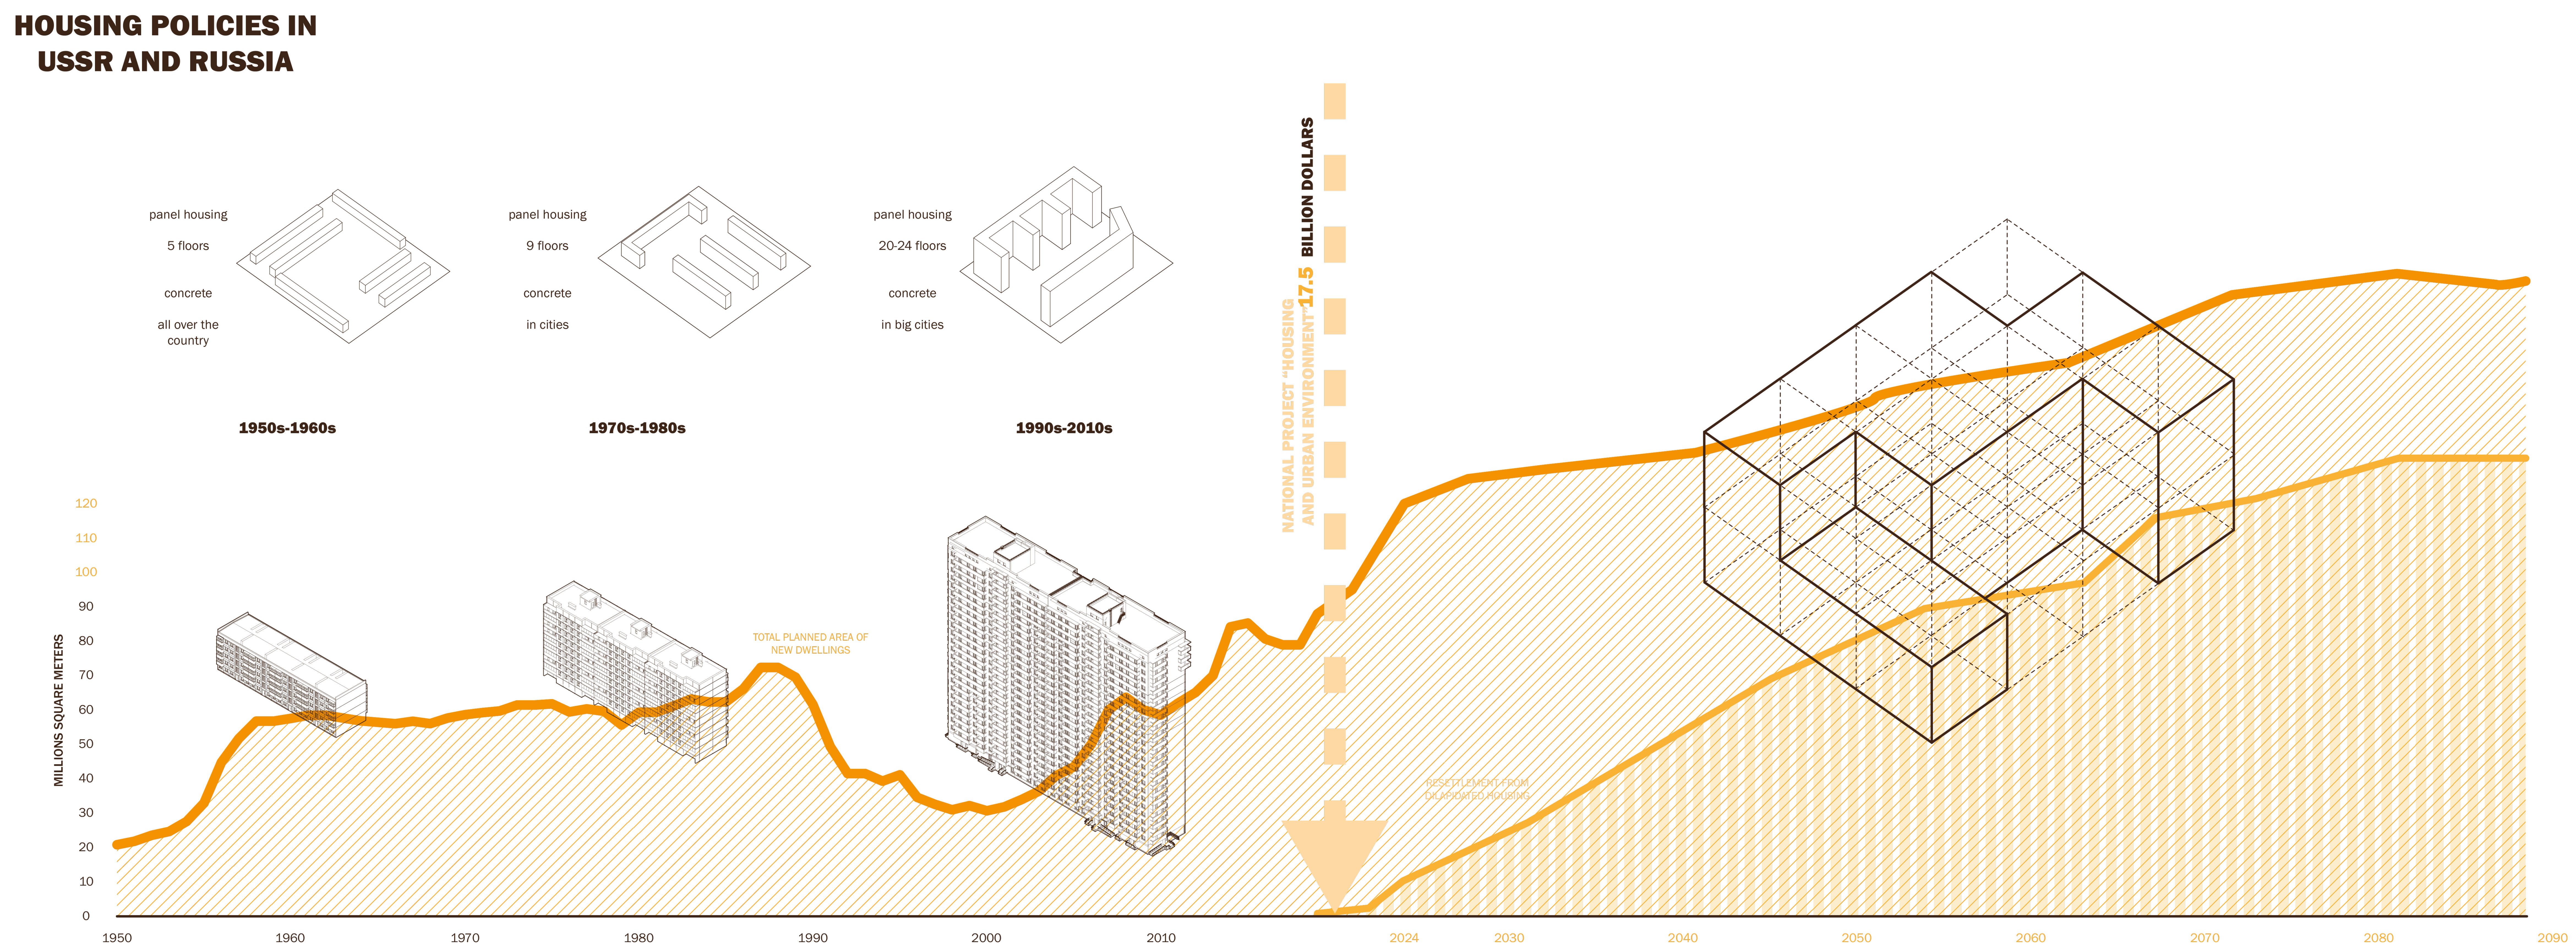 3_Housing-policies-in-Russia